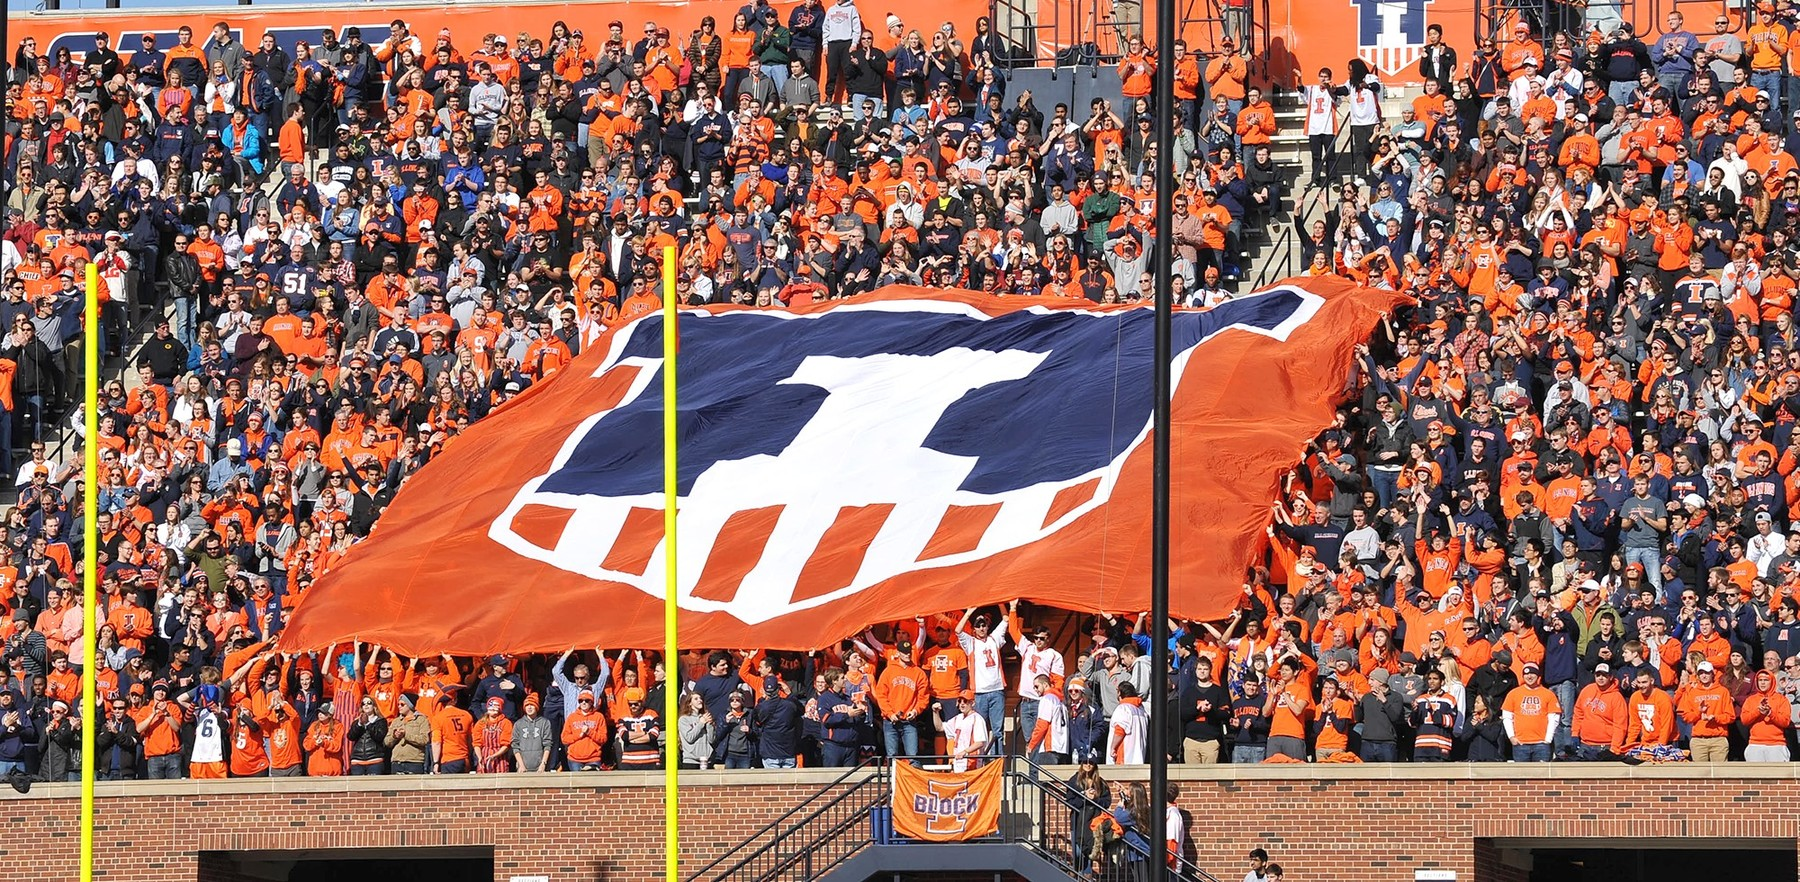 crowd at Memorial Stadium holding a huge 'Illini shield' banner